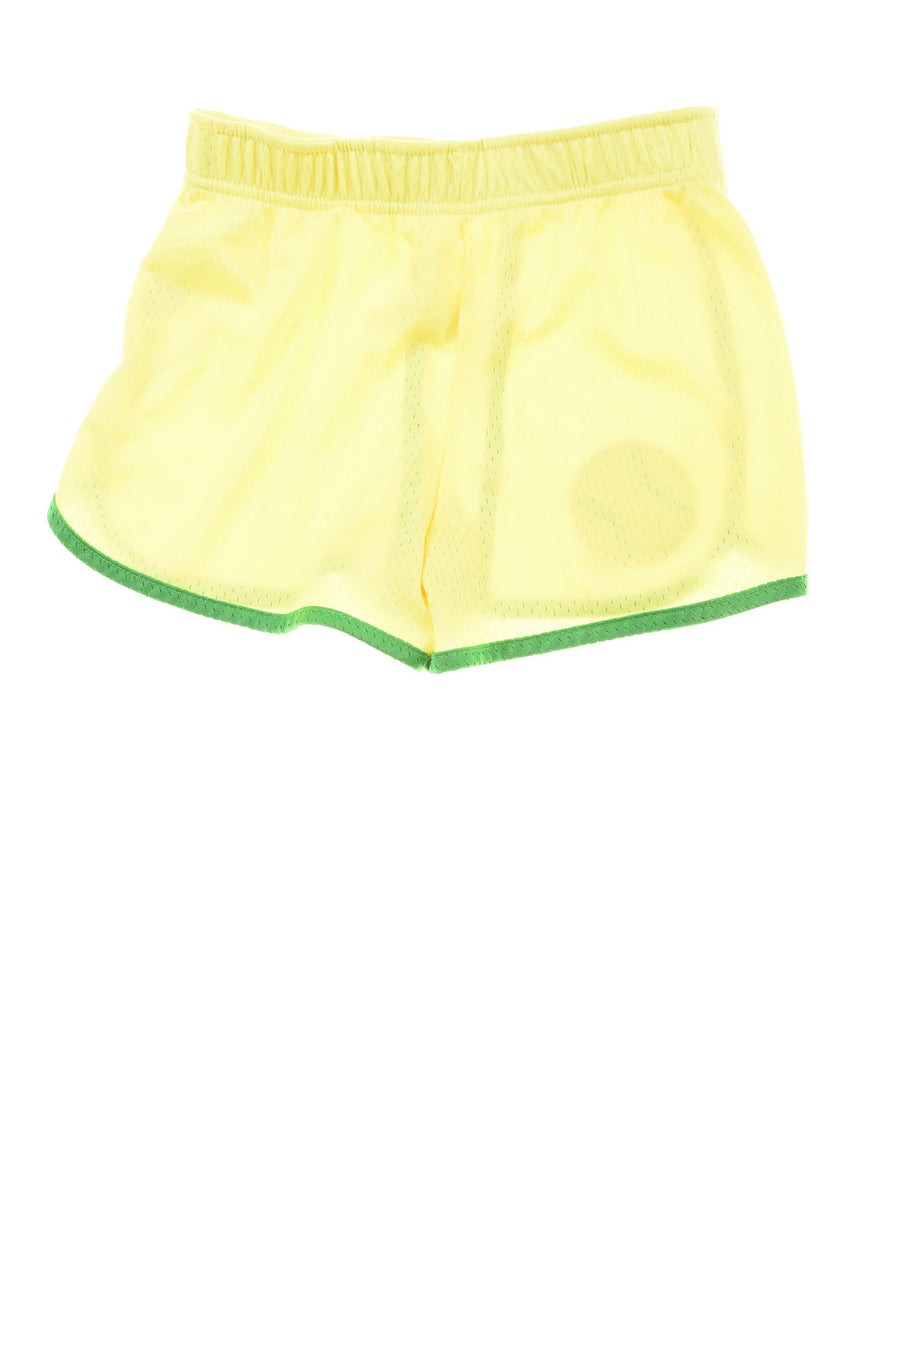 USED Justice Girl's Shorts  8 Yellow & Green